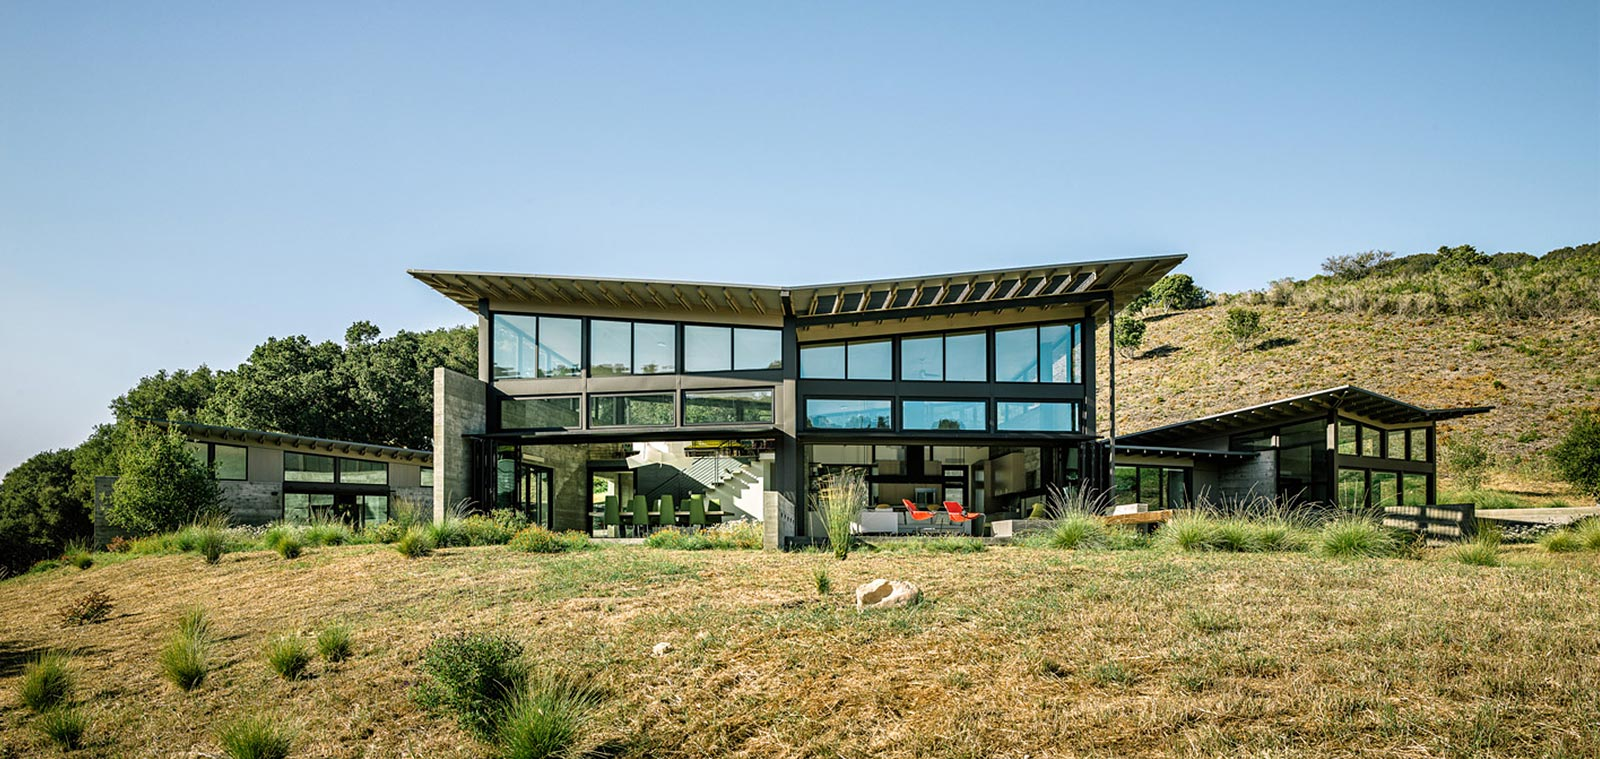 Butterfly House By Feldman Architecture - Contemporary Low-Energy Home In Carmel California Inspired By Nature